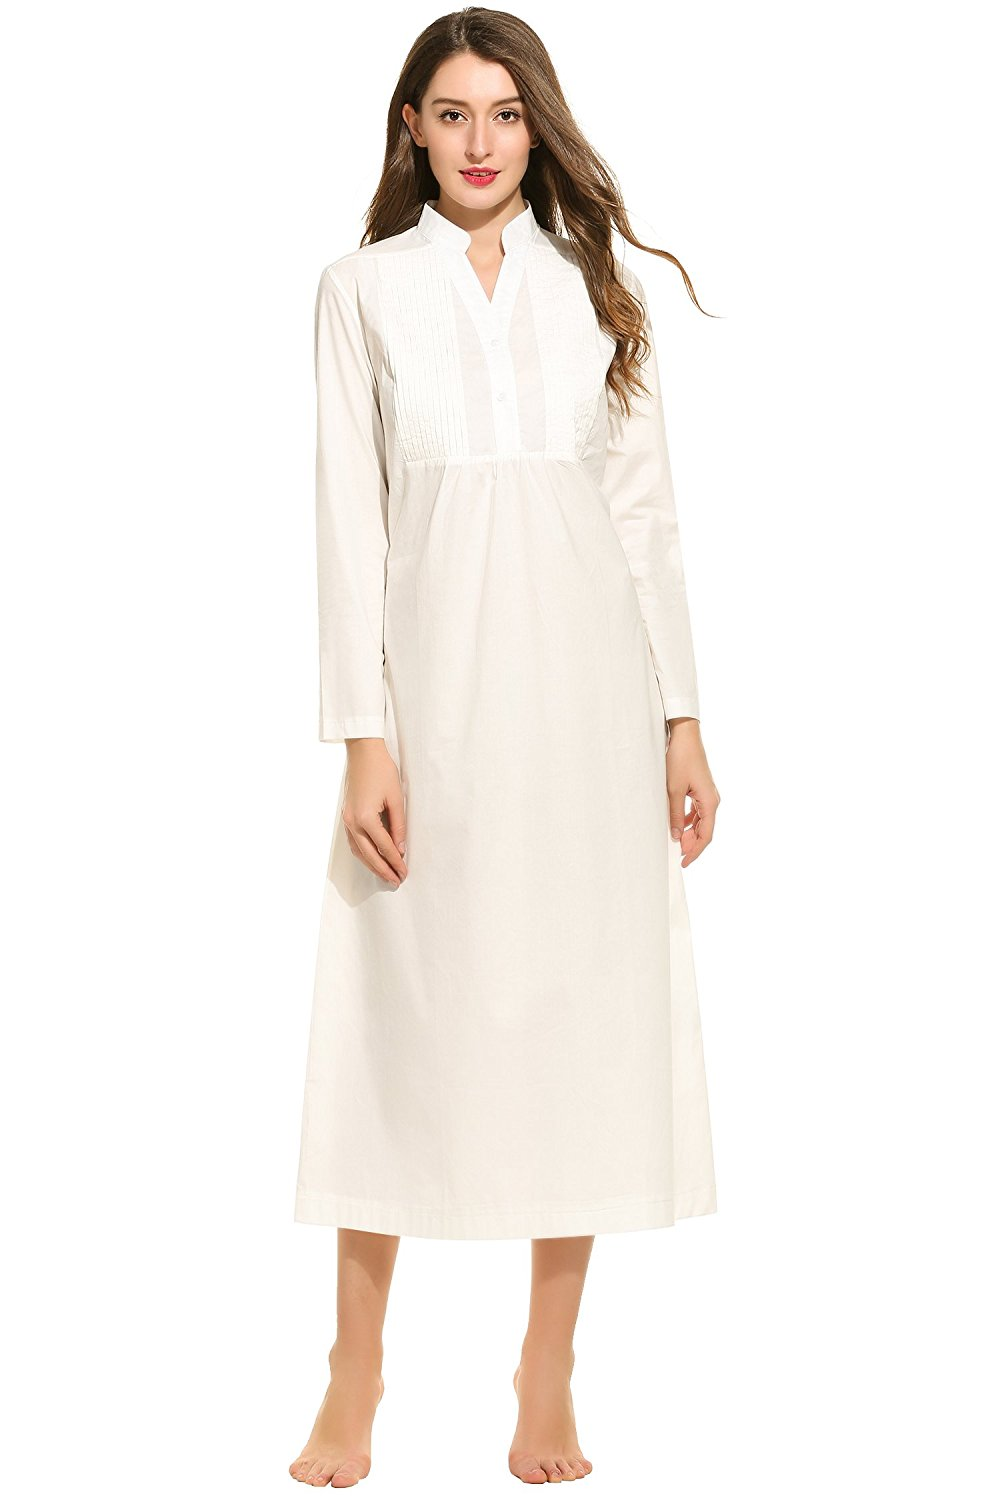 dd291b98af Get Quotations · Ekouaer Womens Cotton Victorian Nightgown Long Sleeve  Vintage Sleepwear(White